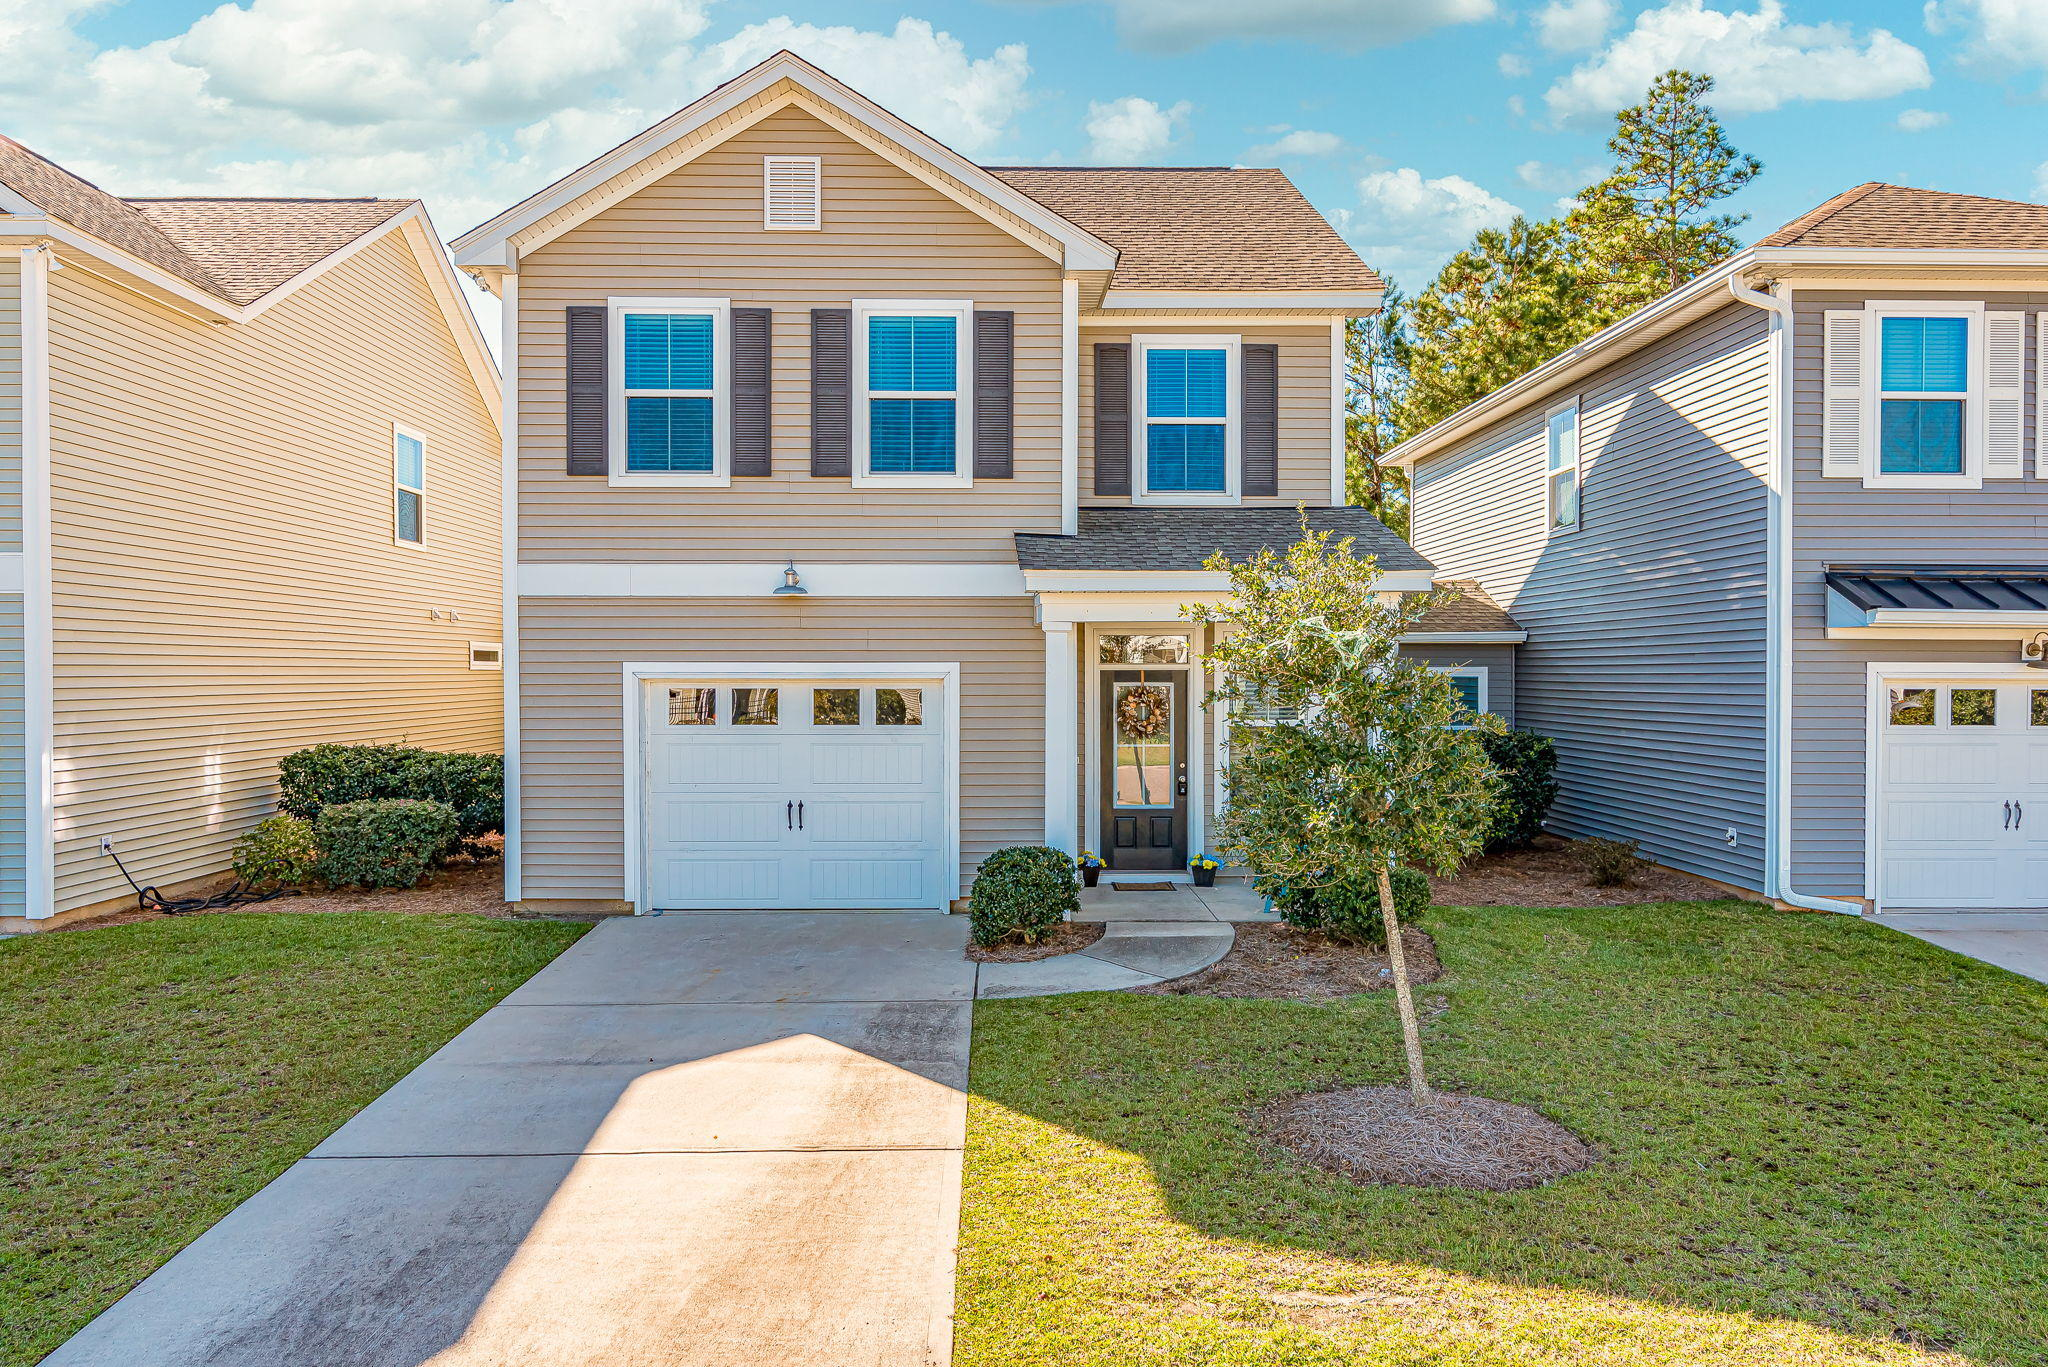 4201 Poplar Grove Place Summerville, Sc 29483